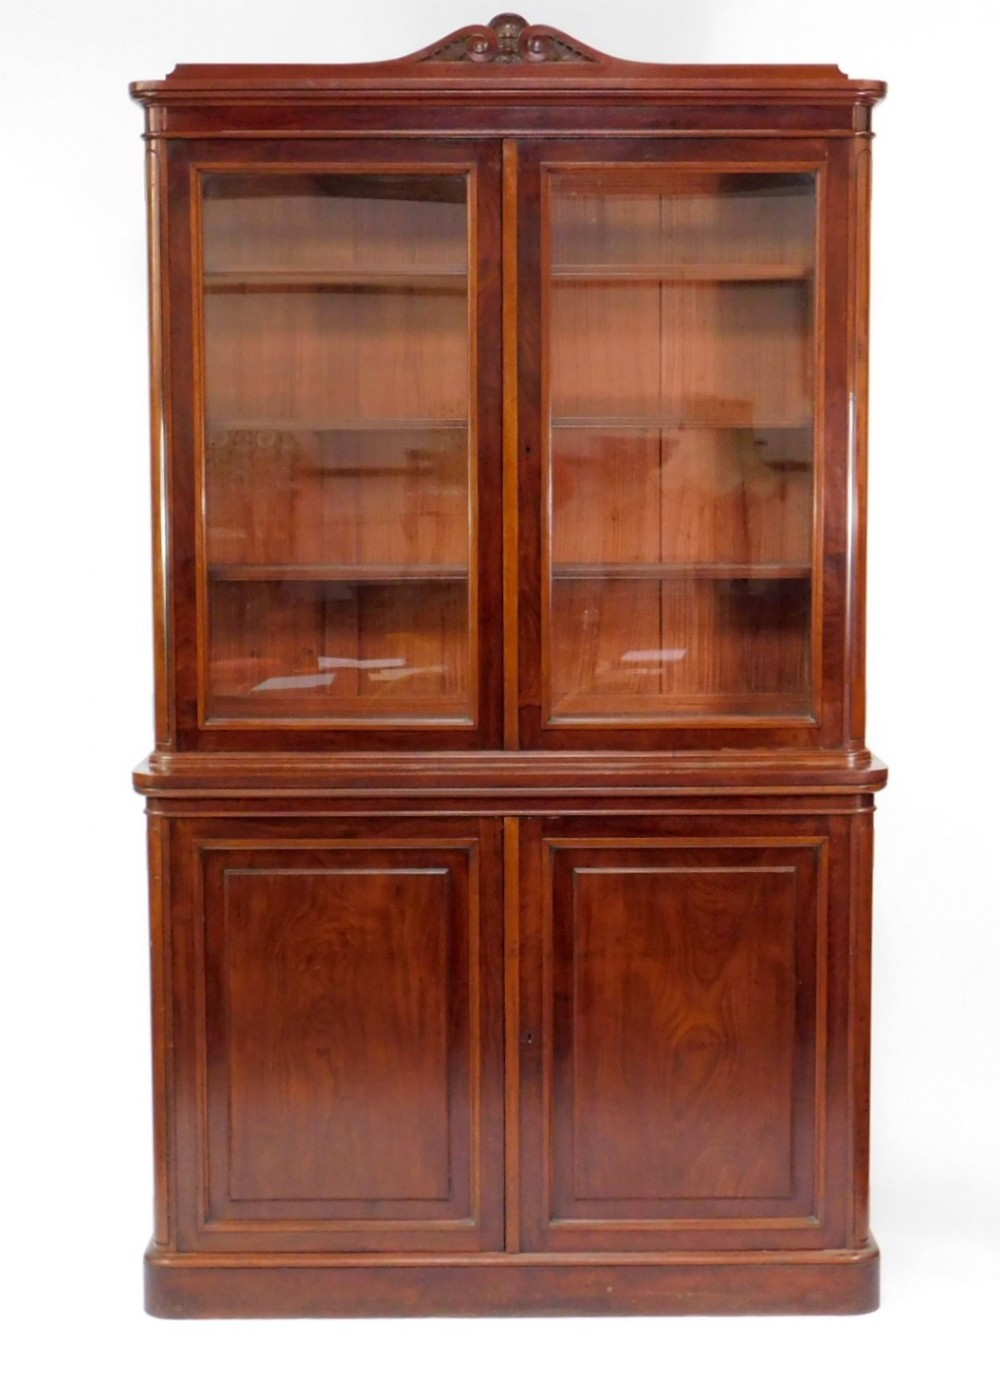 superb late regency gillows bookcase